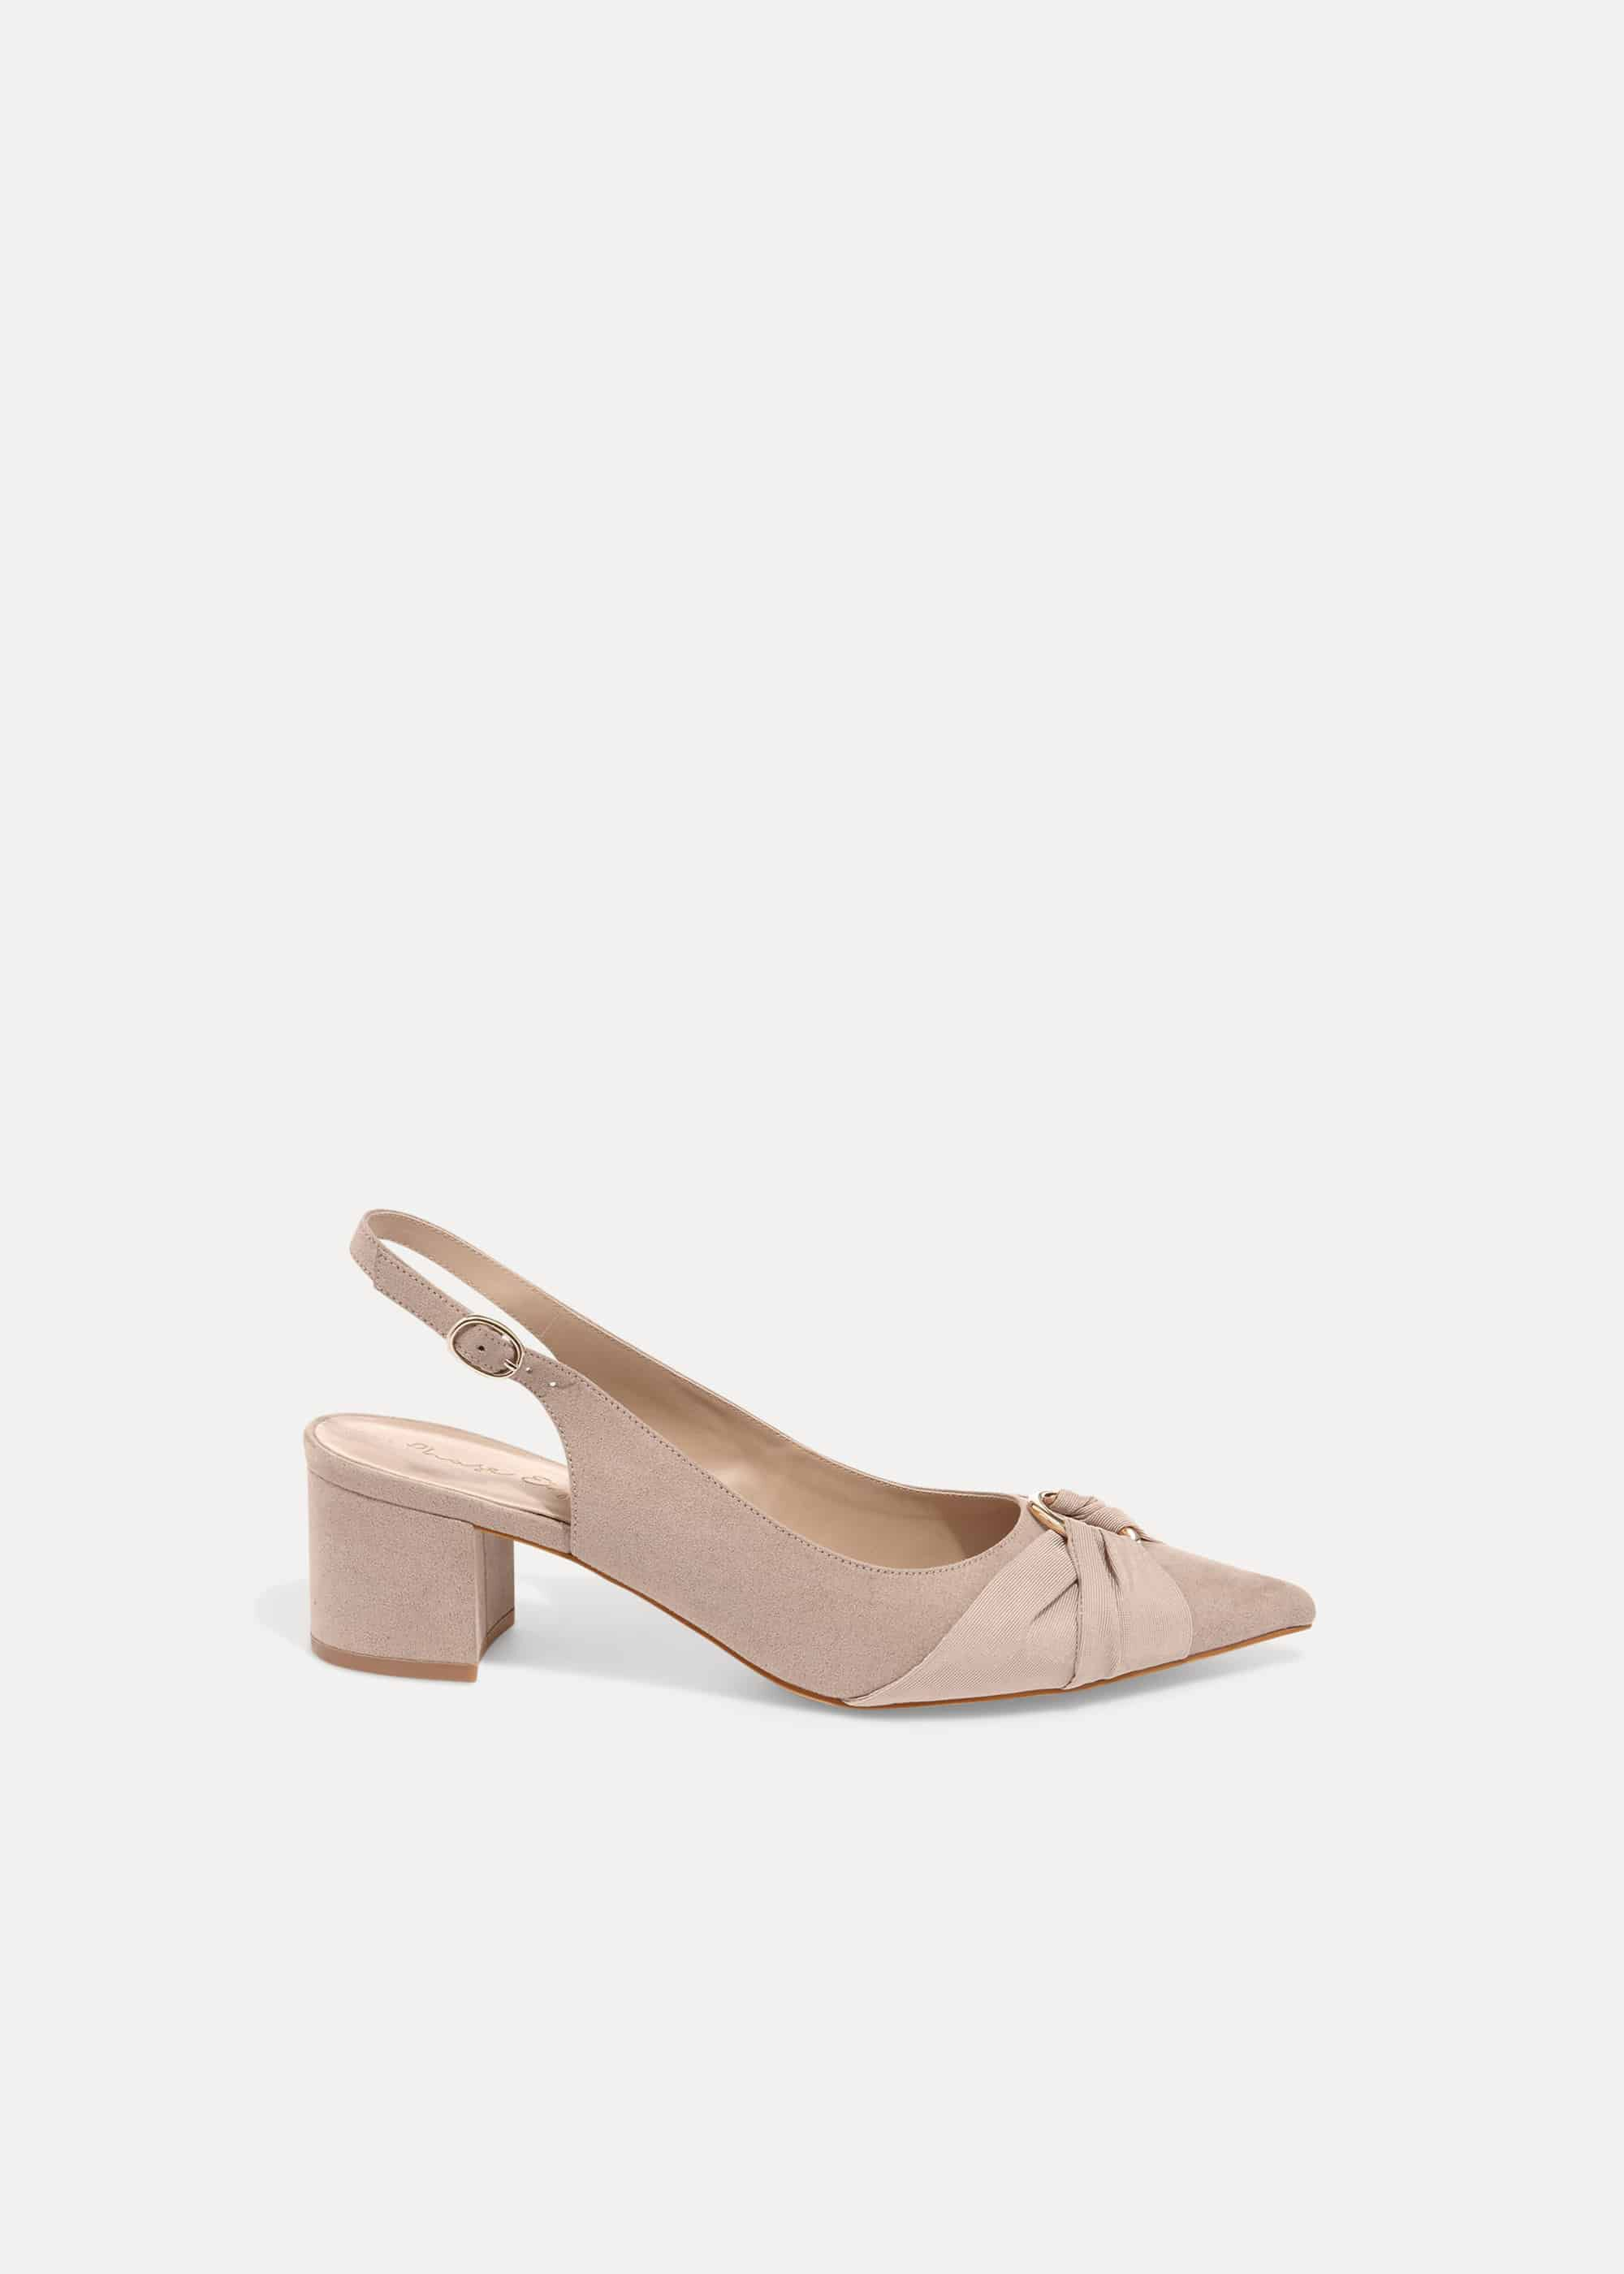 Phase Eight Giselle Block Heel Court Shoes, Brown, High Heels